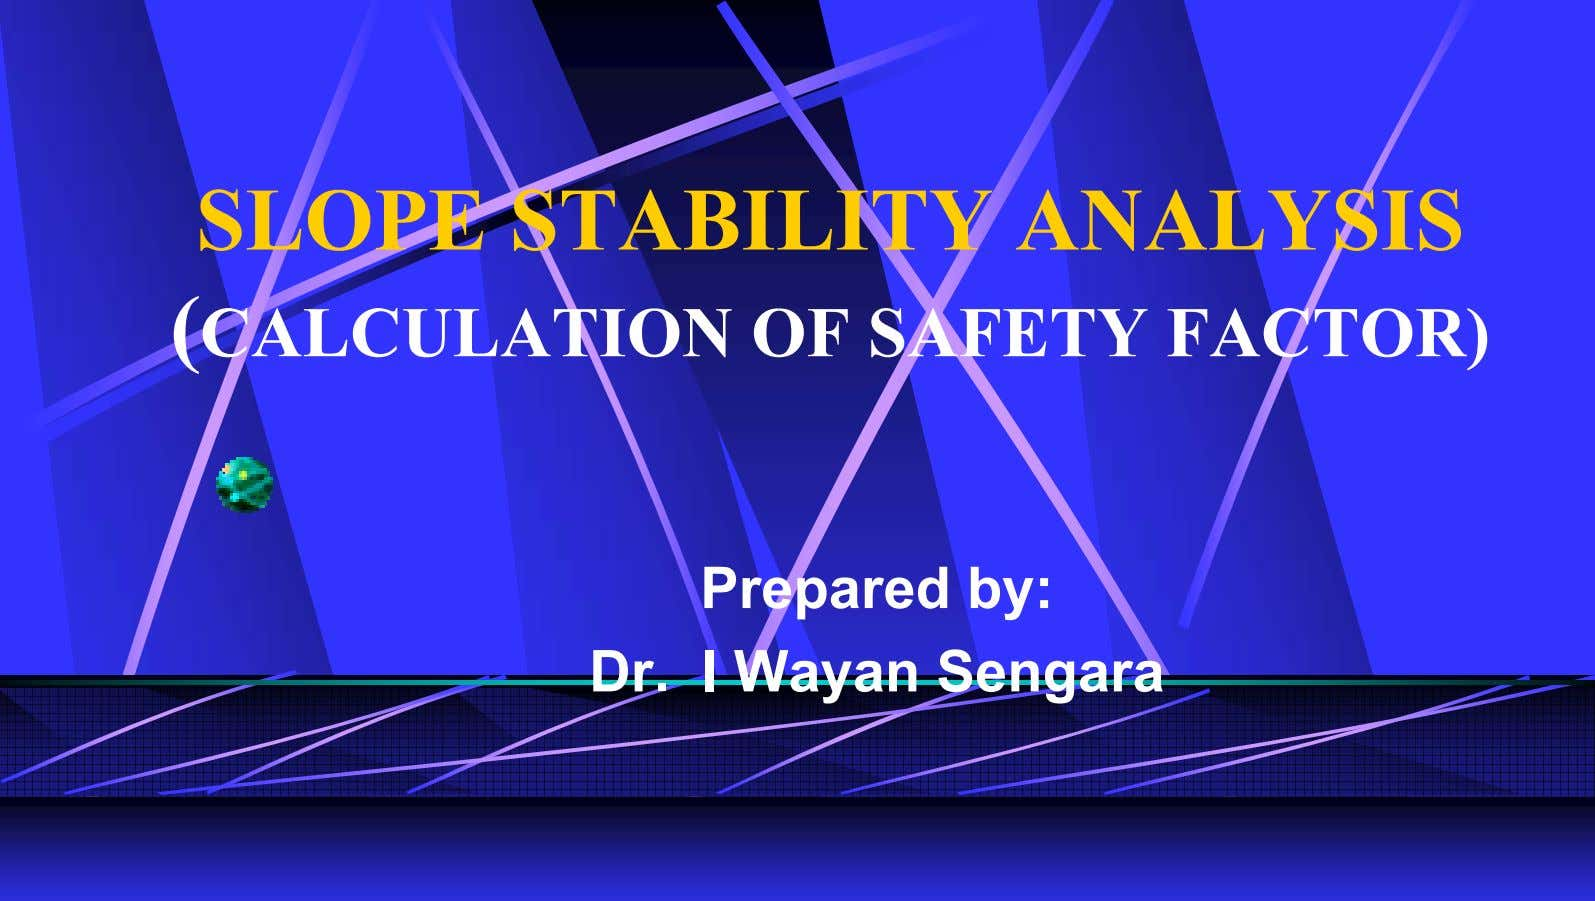 SLOPE STABILITY ANALYSIS (CALCULATION OF SAFETY FACTOR) Prepared by: Dr. I Wayan Sengara